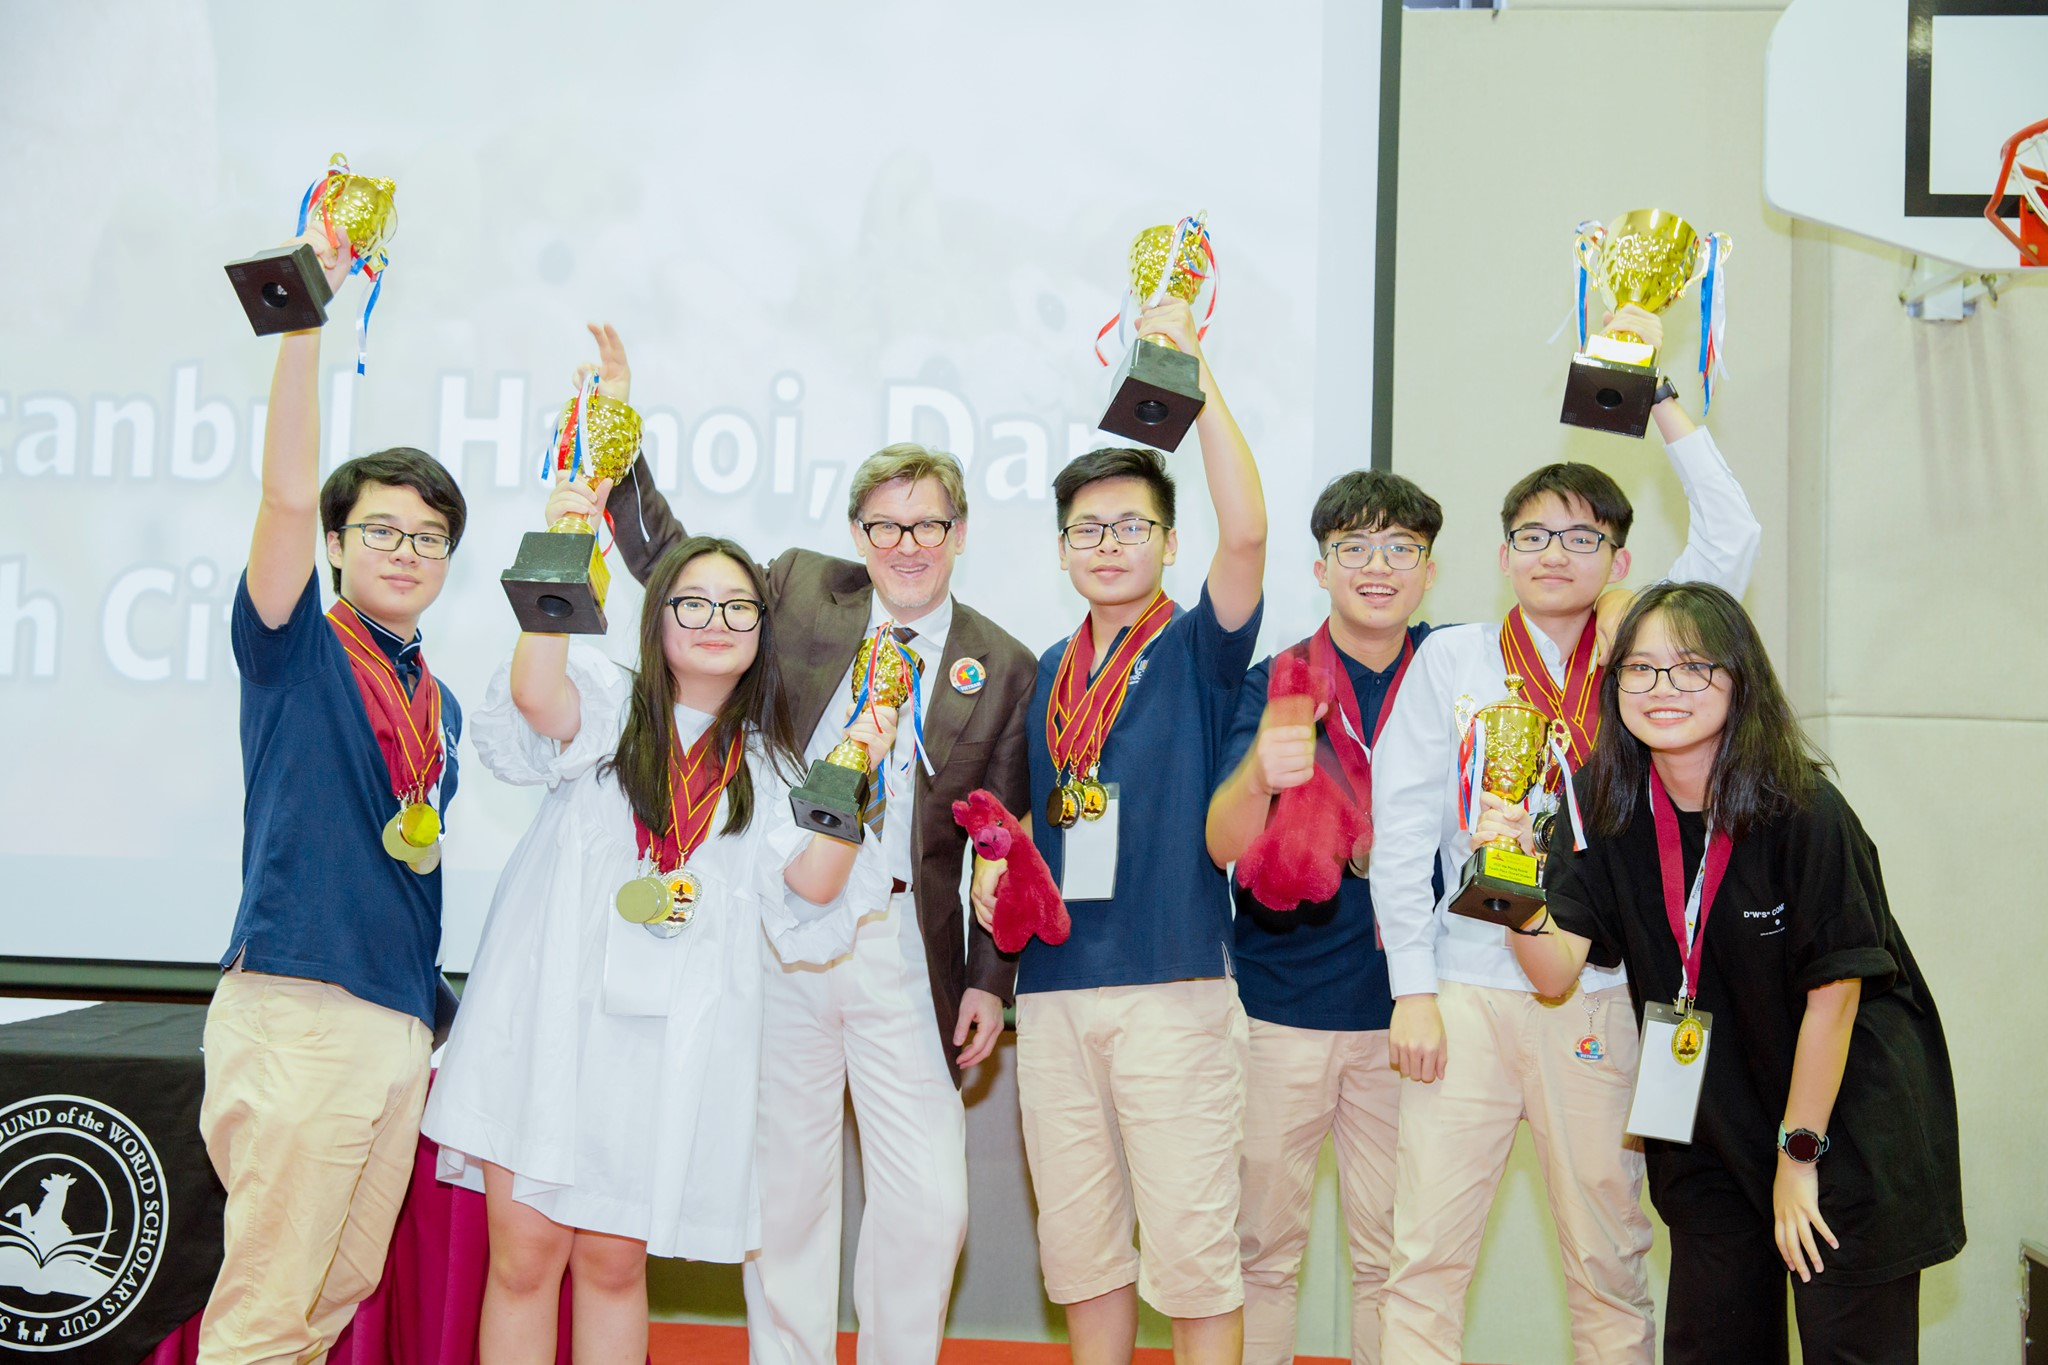 Vinschool Imperia hosted the World Scholar's Cup regional competition